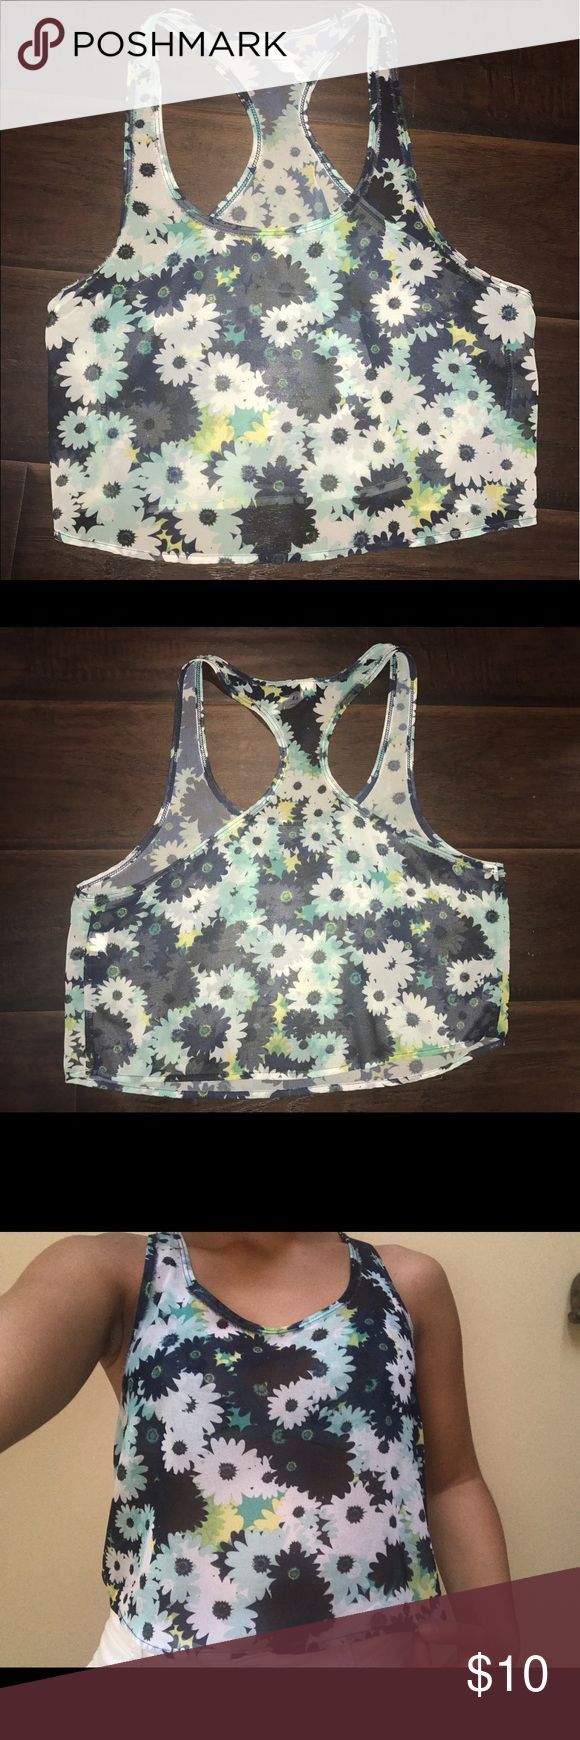 Floral Pattern Sheet Bethany Mota Shirt Sheer Floral Pattern. From the Bethany Mota Collection at Aeropostale. Fantastic condition. Super cute for the summer! Tops